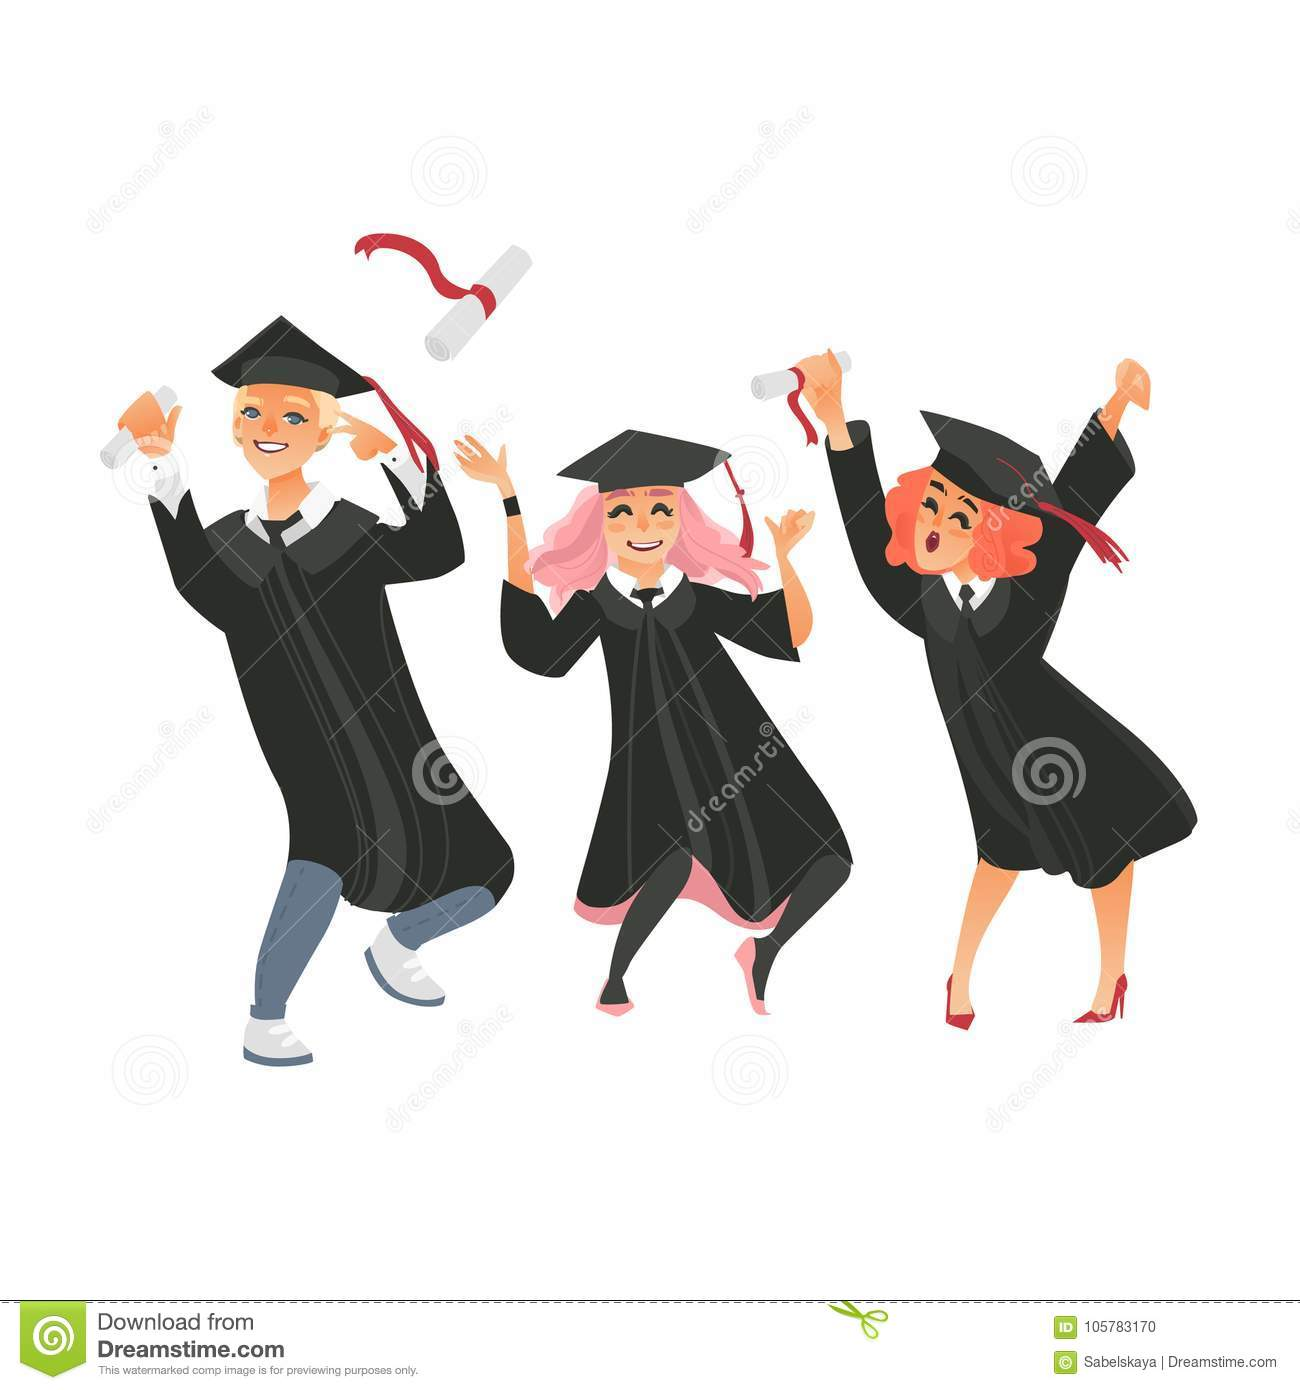 Group Of Three College Graduates In Graduation Cap And Gown Throwing Diplomas Up Dancing From Happiness Flat Vector Illustration Isolated On White